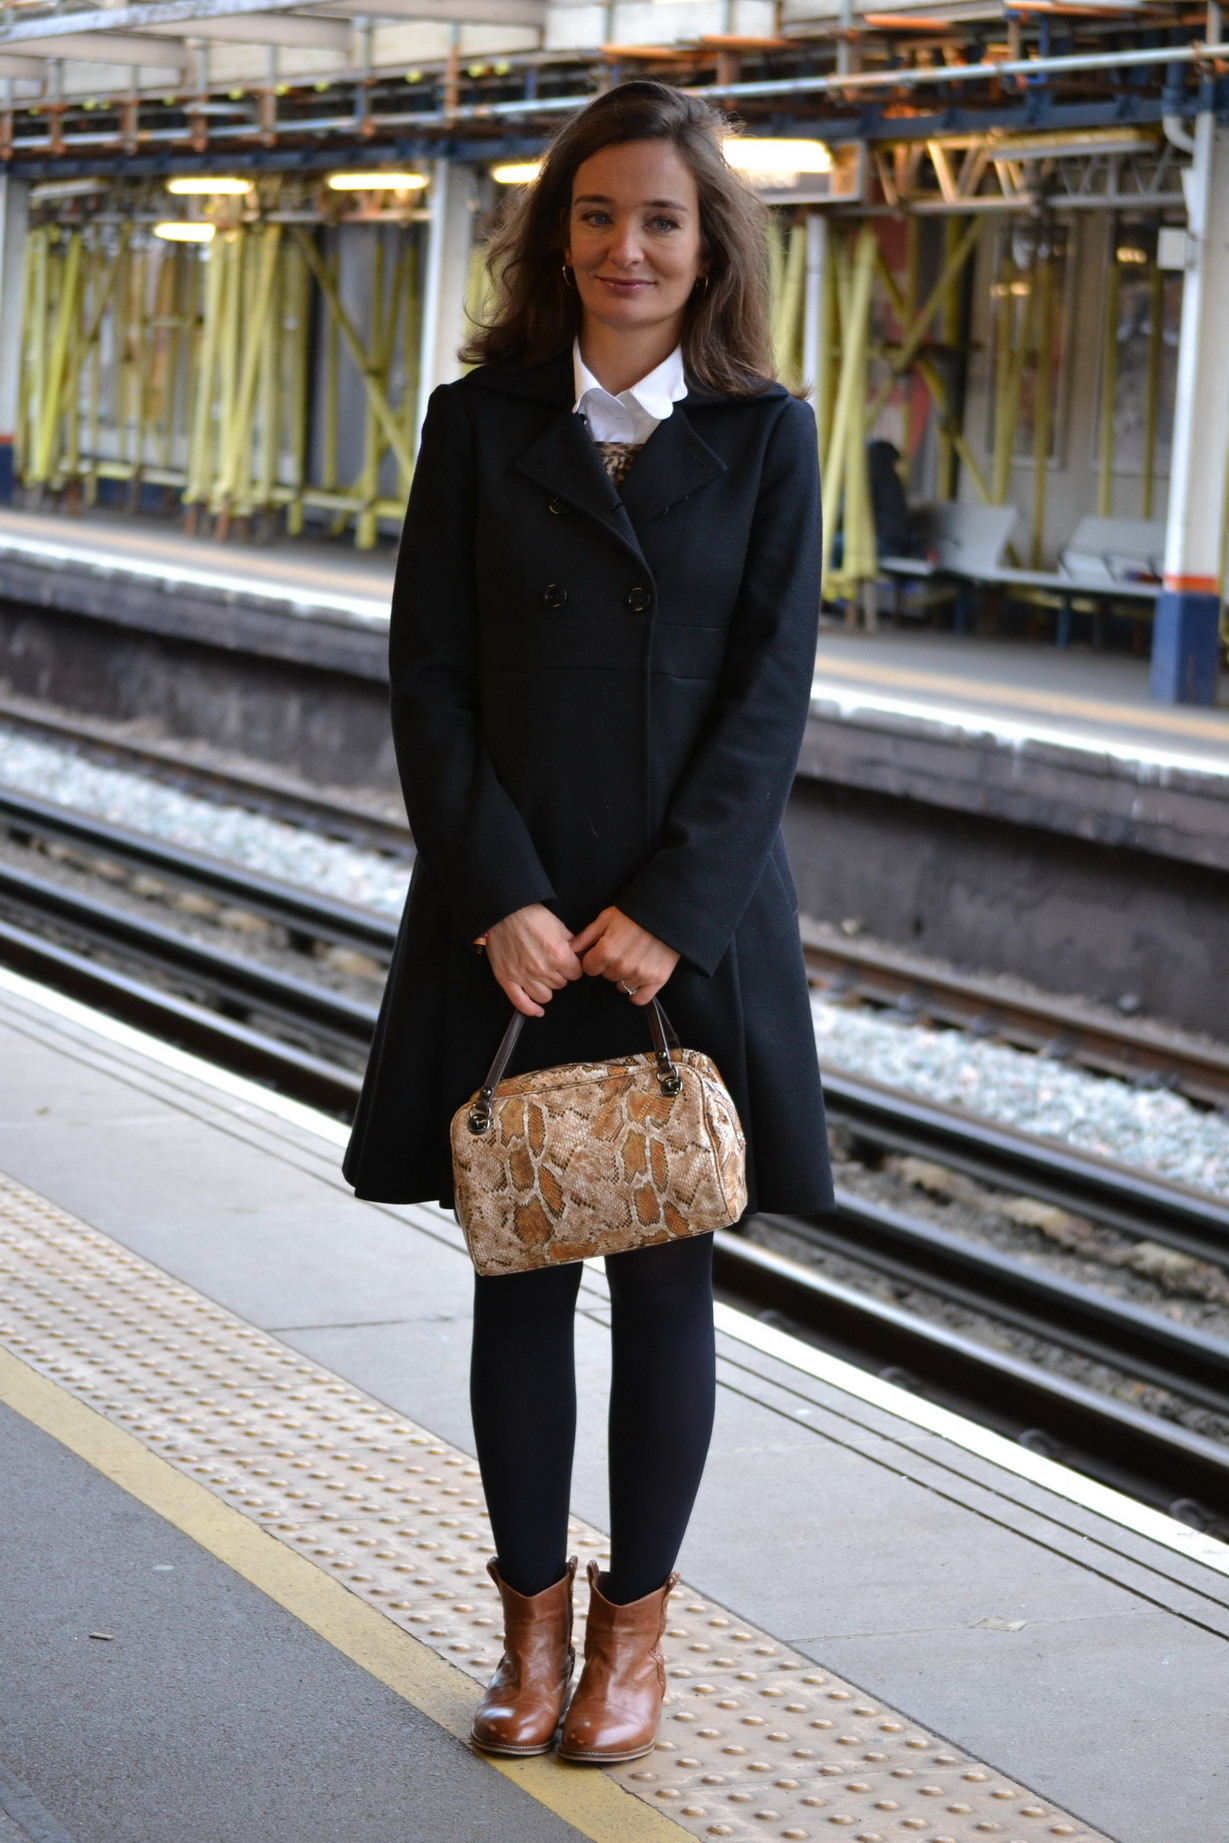 Black Coat and python bag Alberta Ferretii